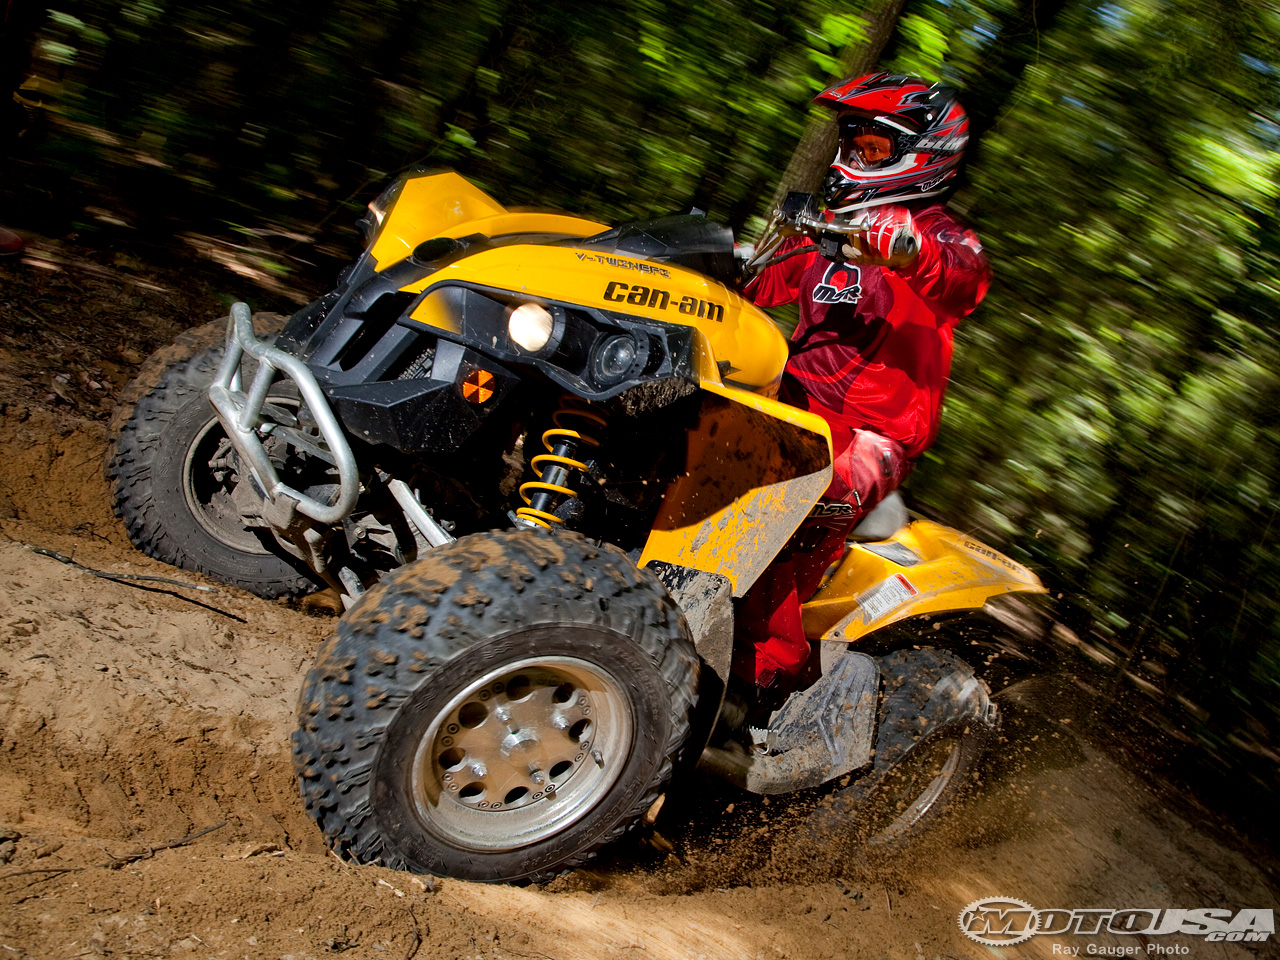 can-am renegade 800r-pic. 2